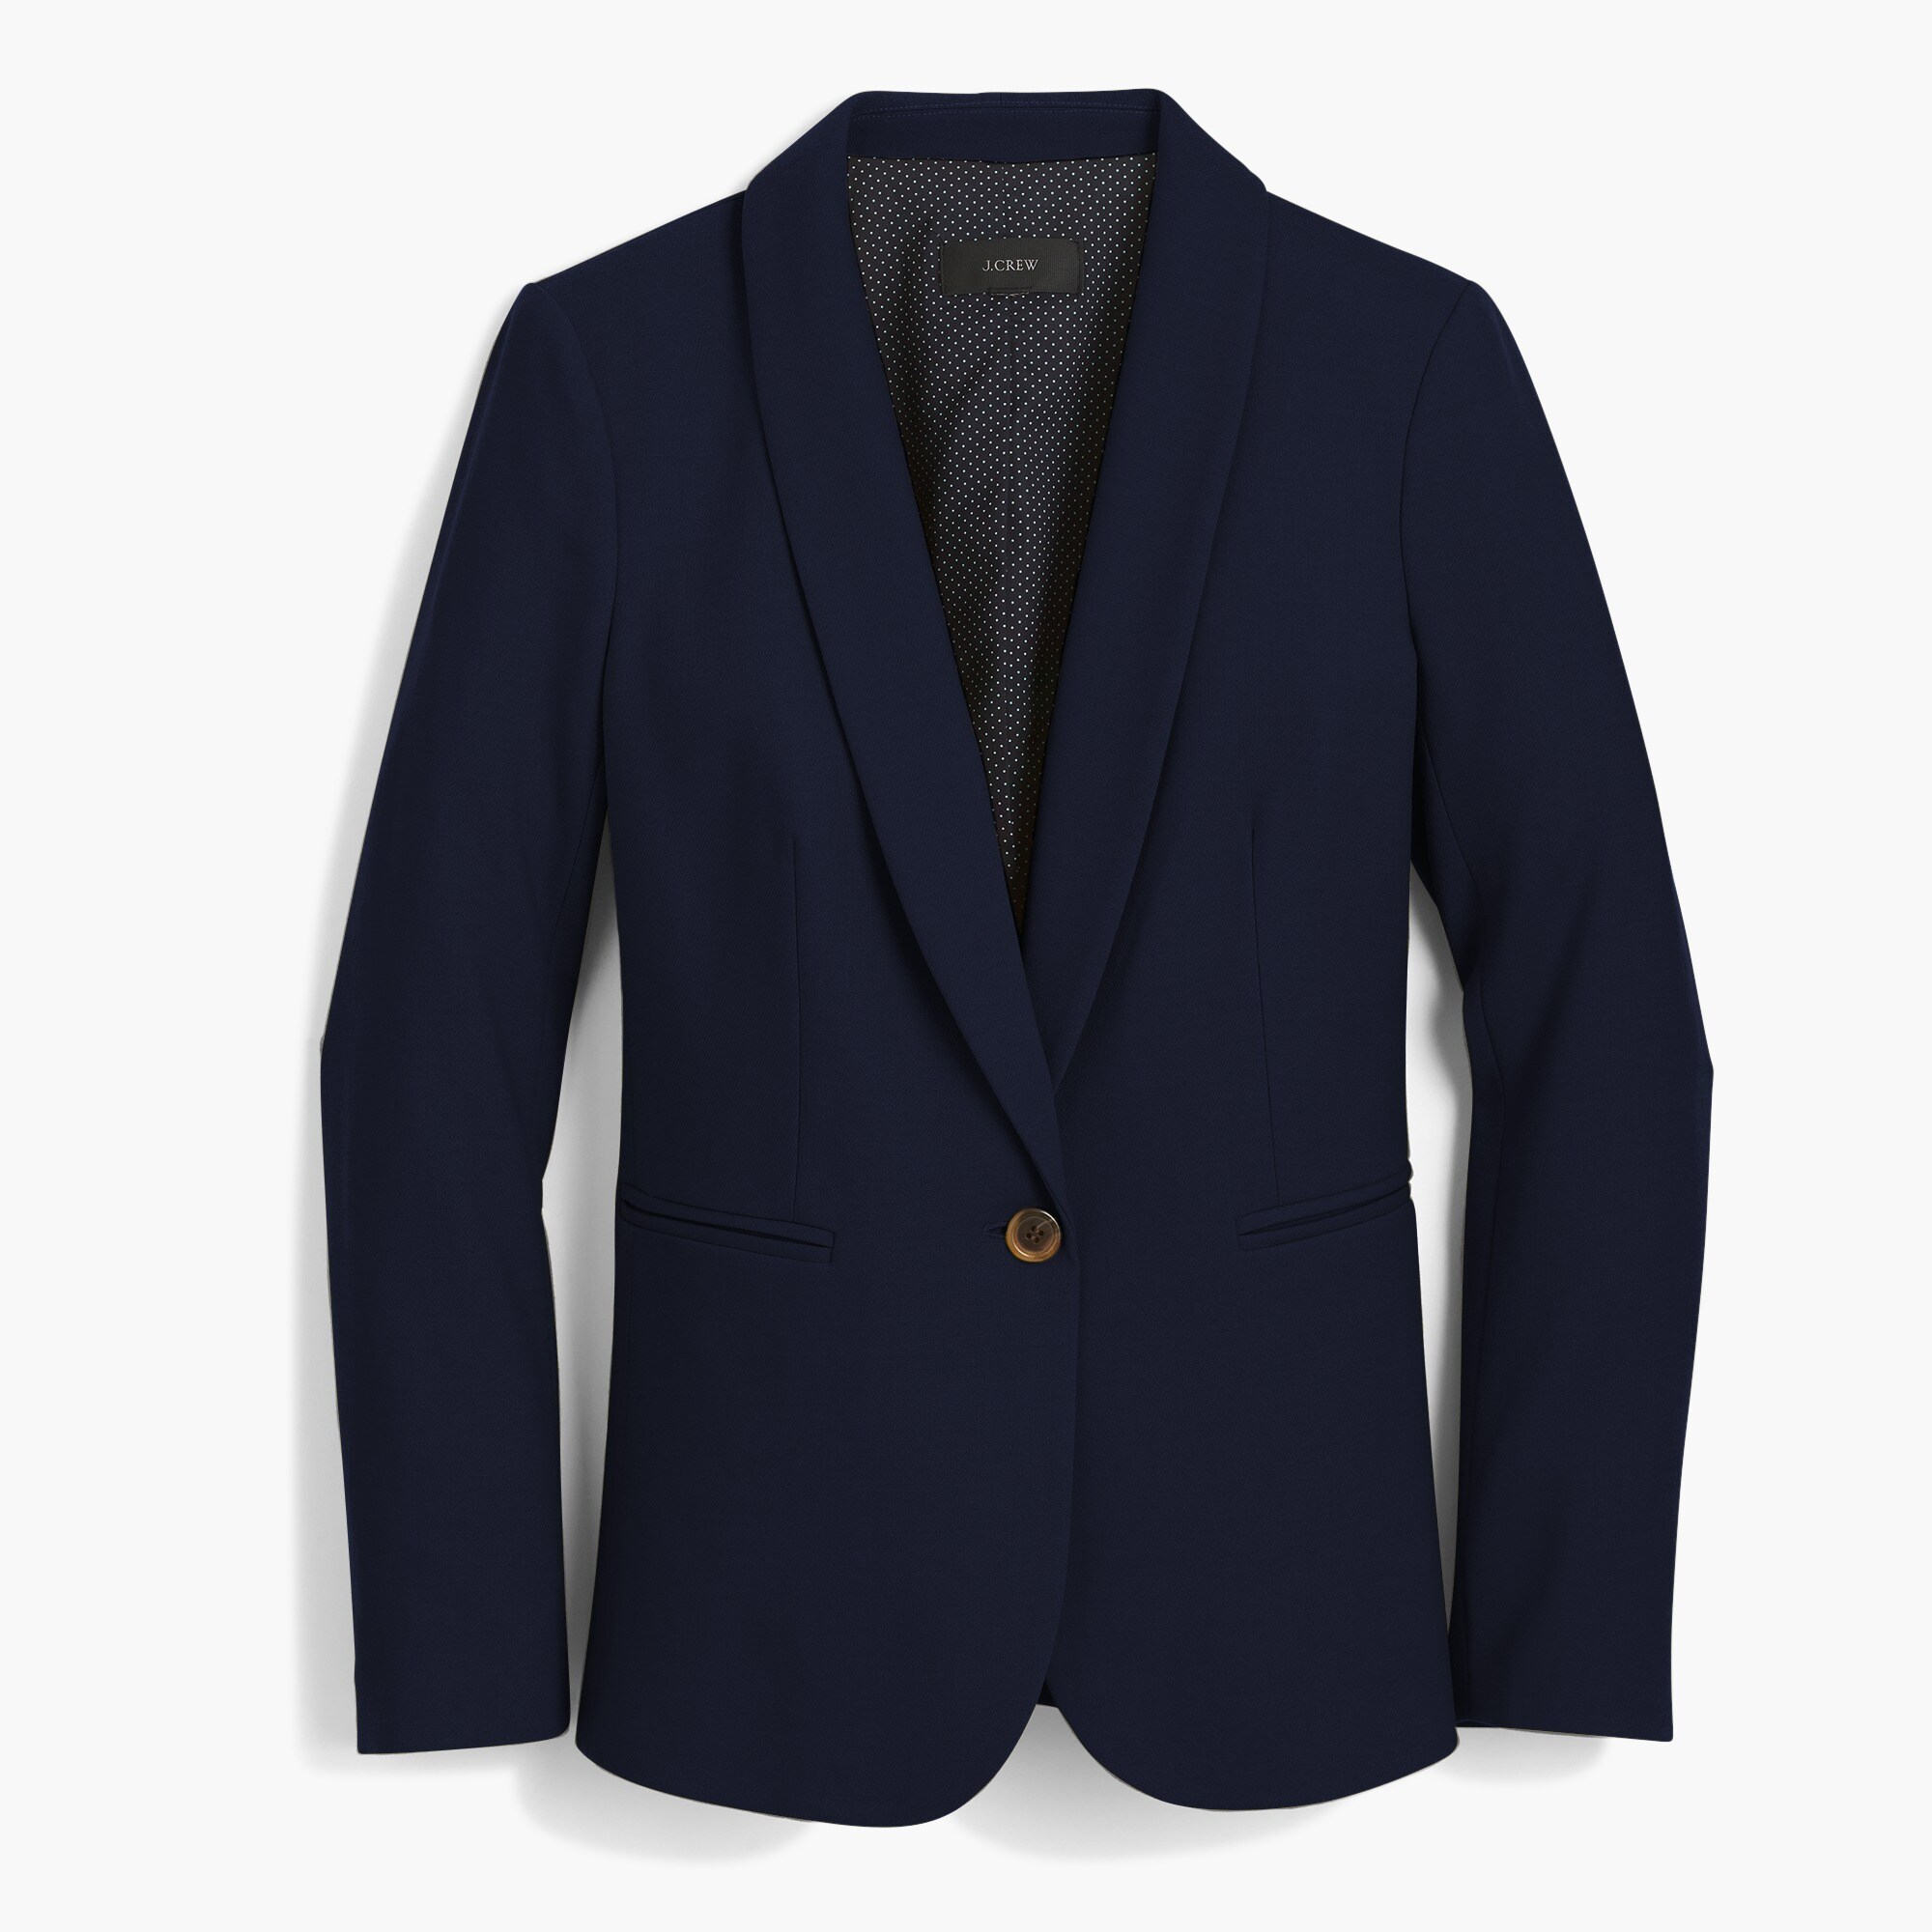 Image 2 for Tall Parke blazer